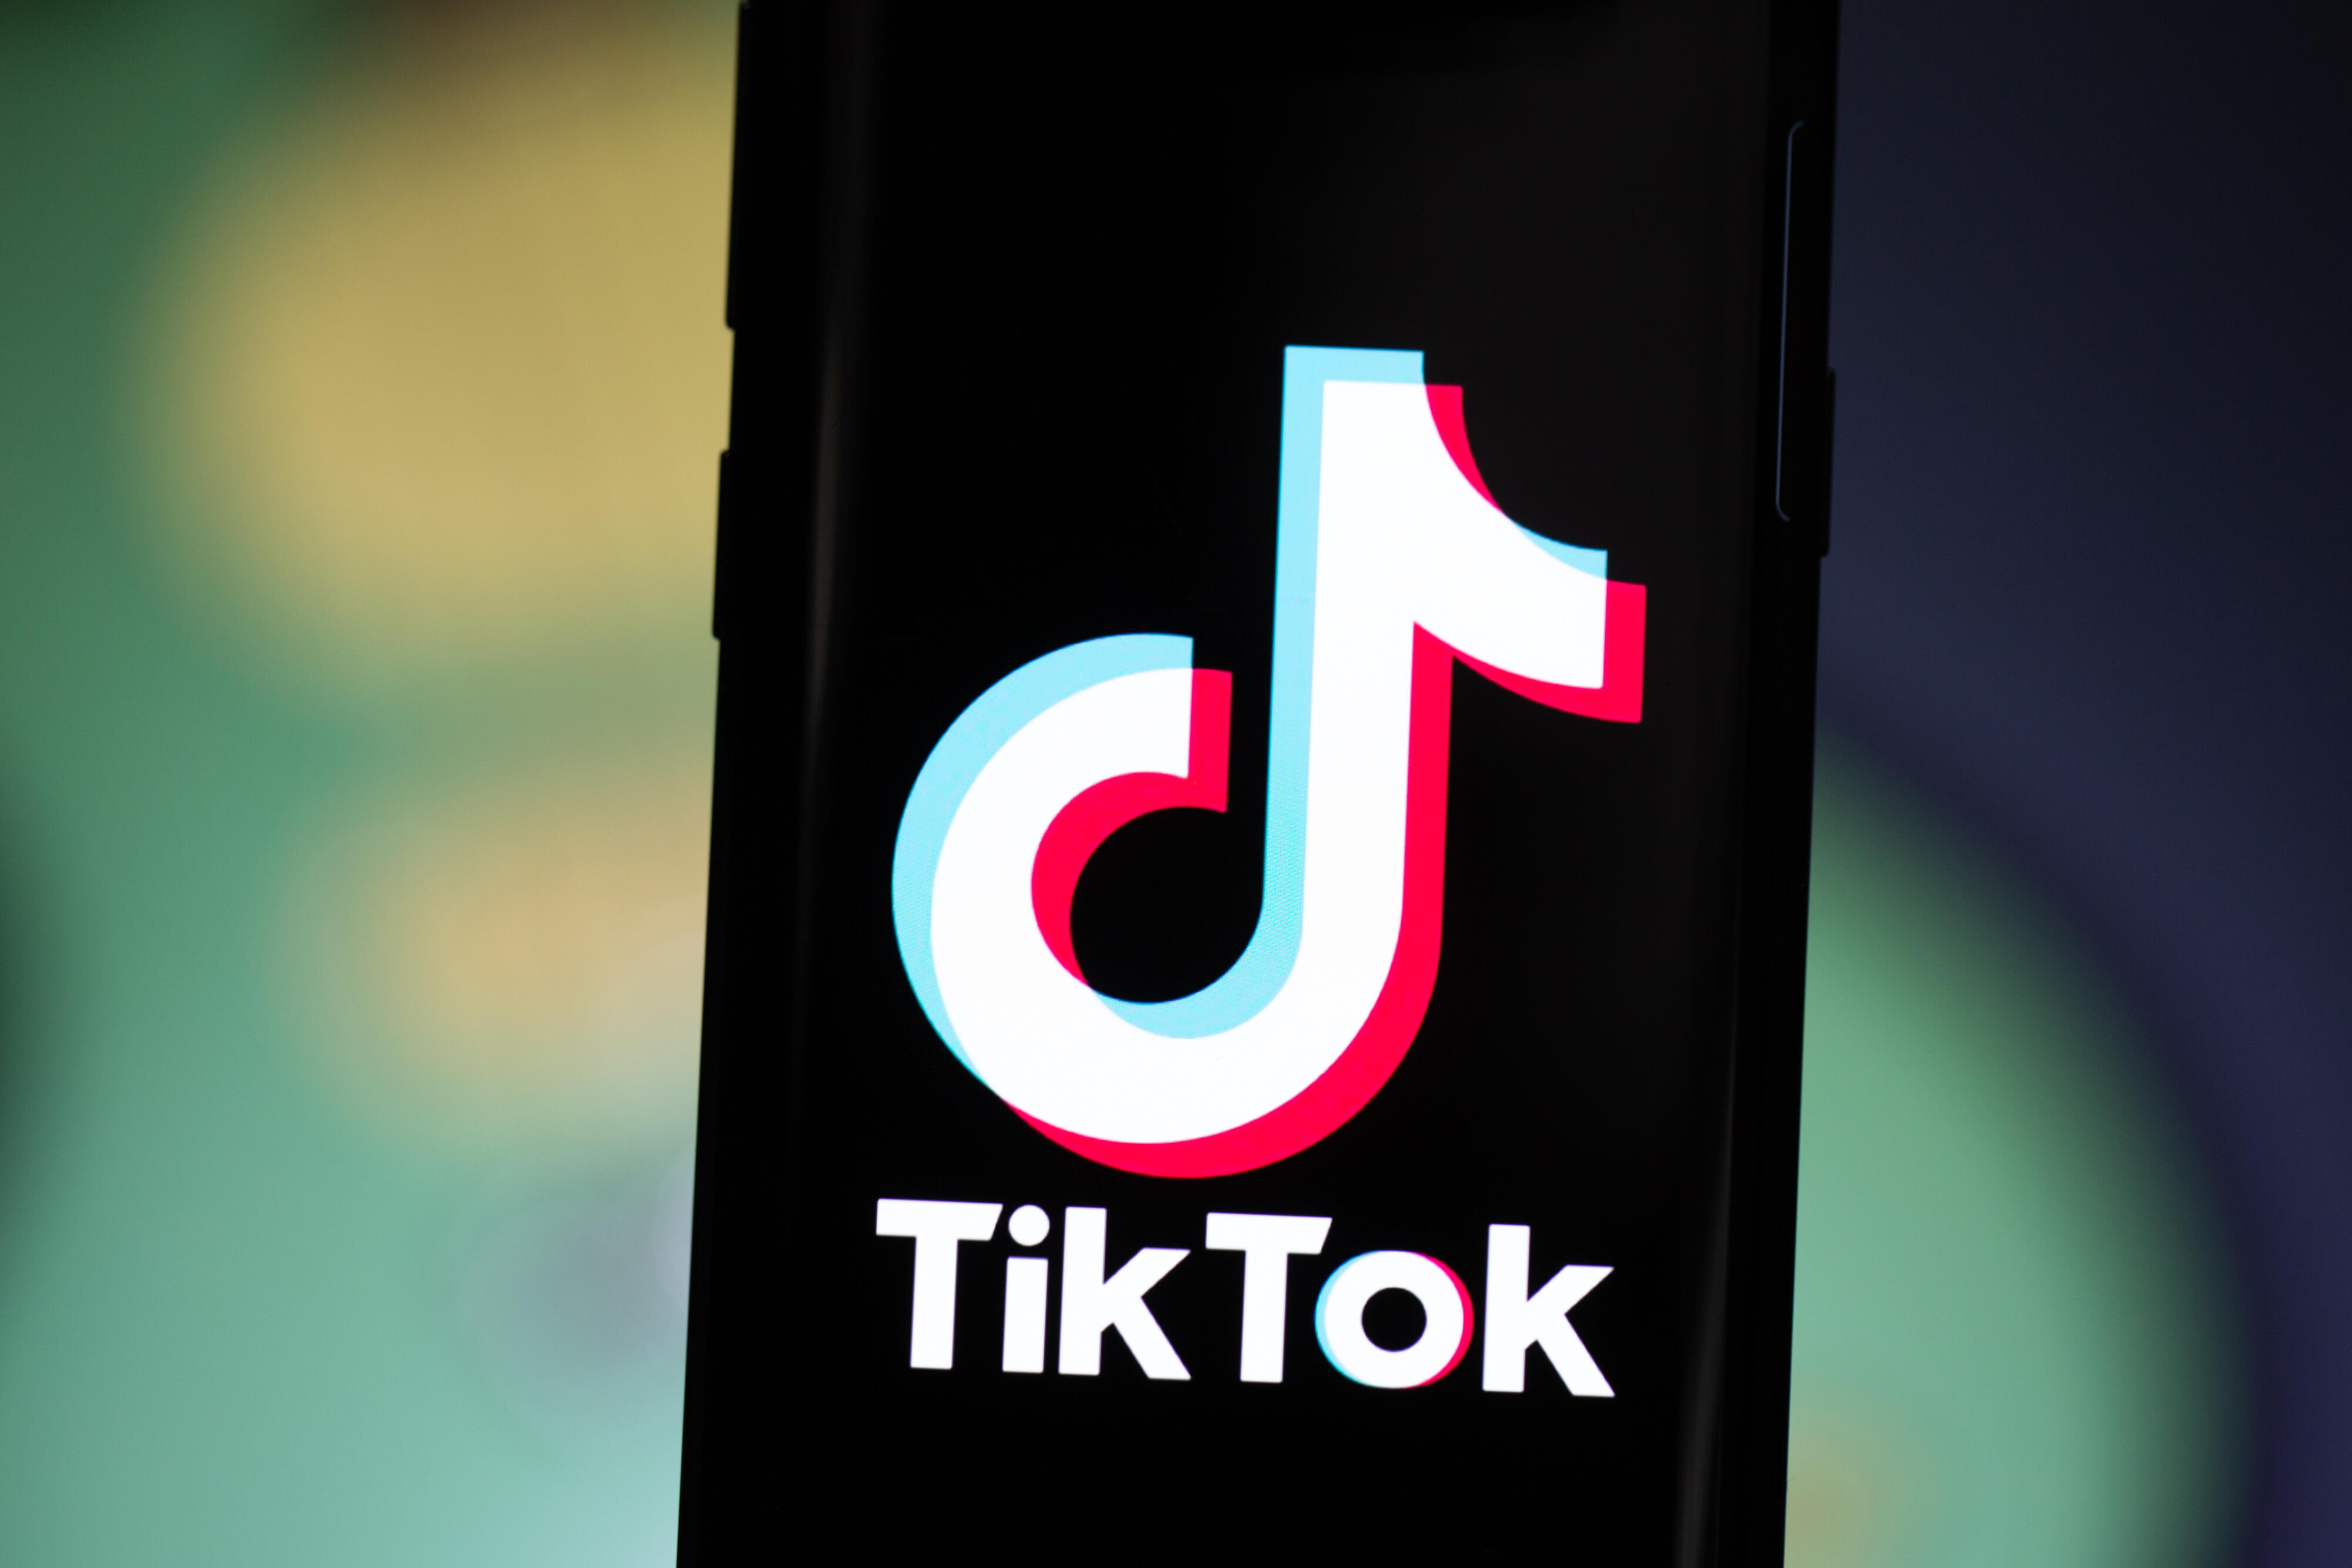 How To Use Tiktok Make Videos Go Live Gain Followers And Maybe Get Famous Cnet